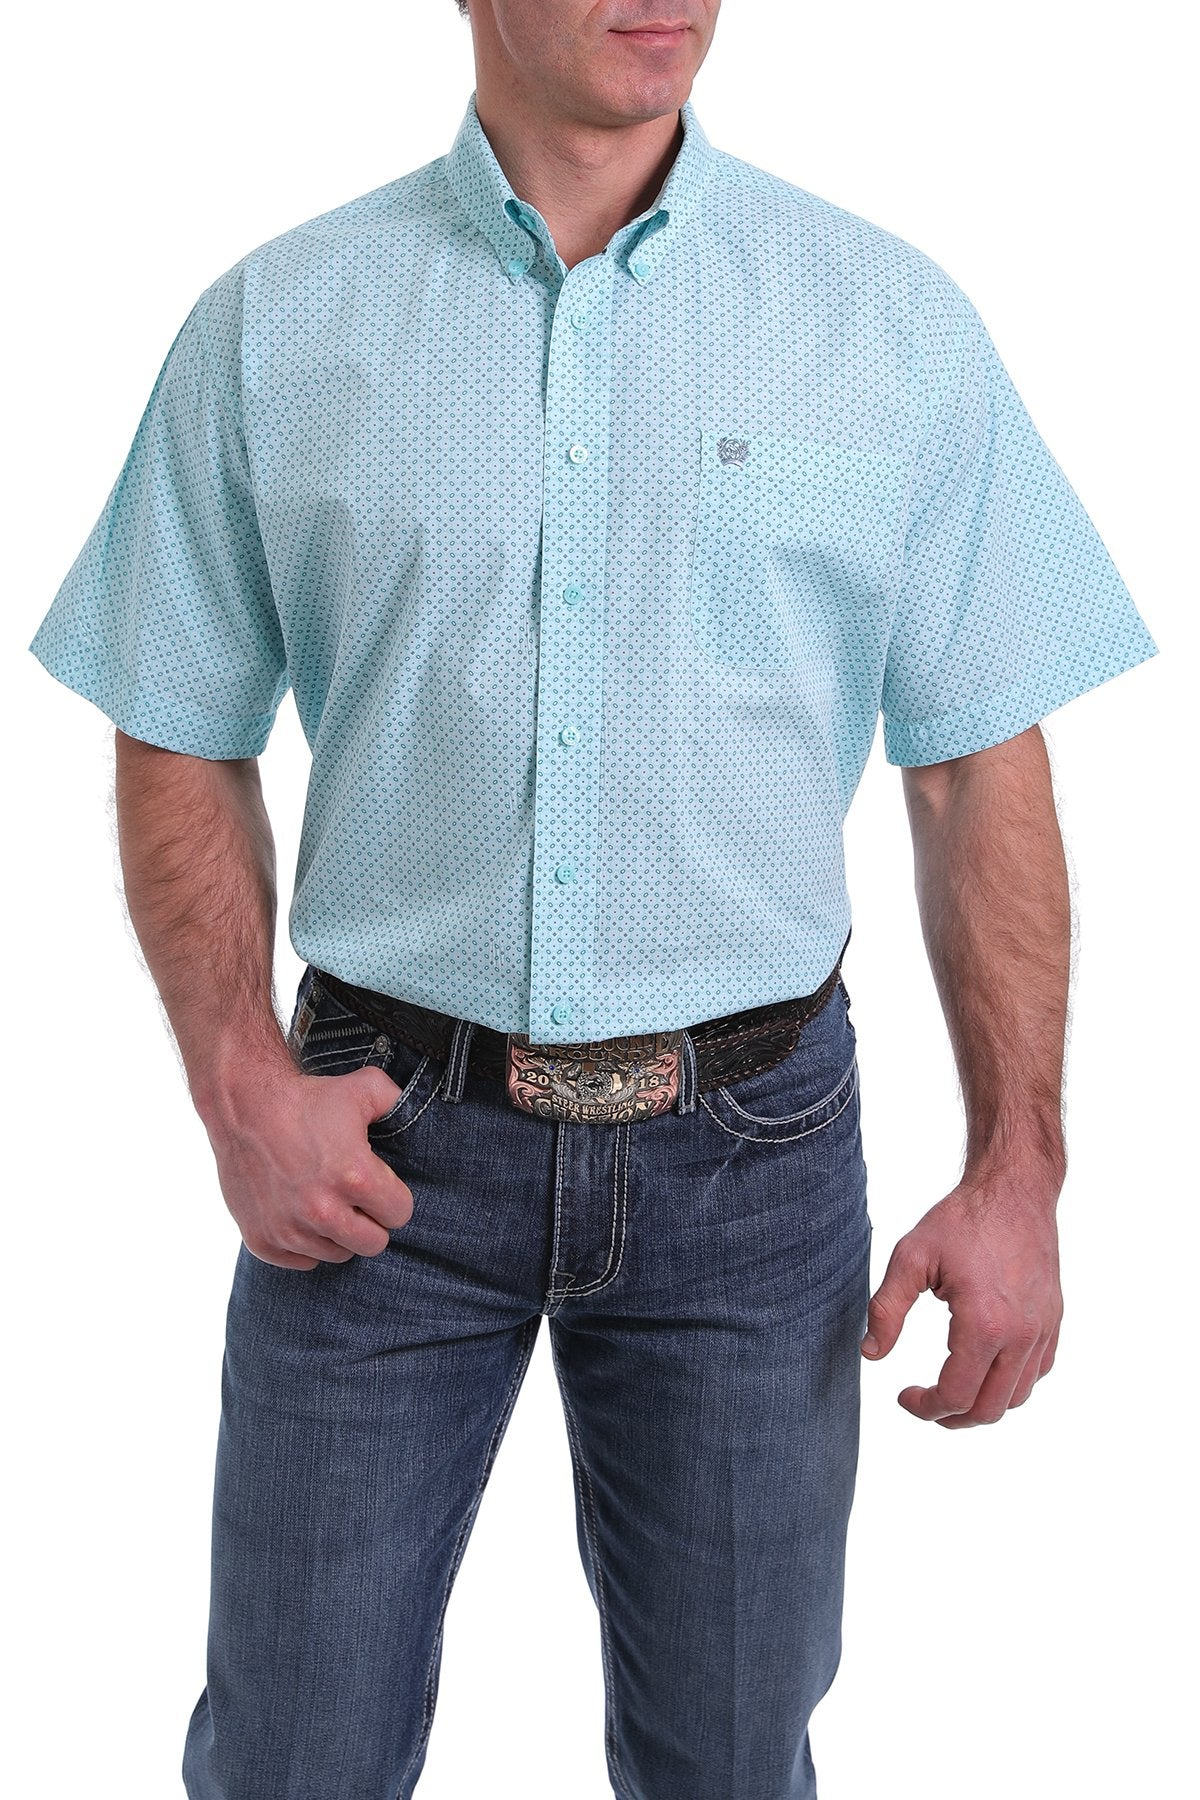 Cinch Mens Light Blue Short Sleeve Shirt